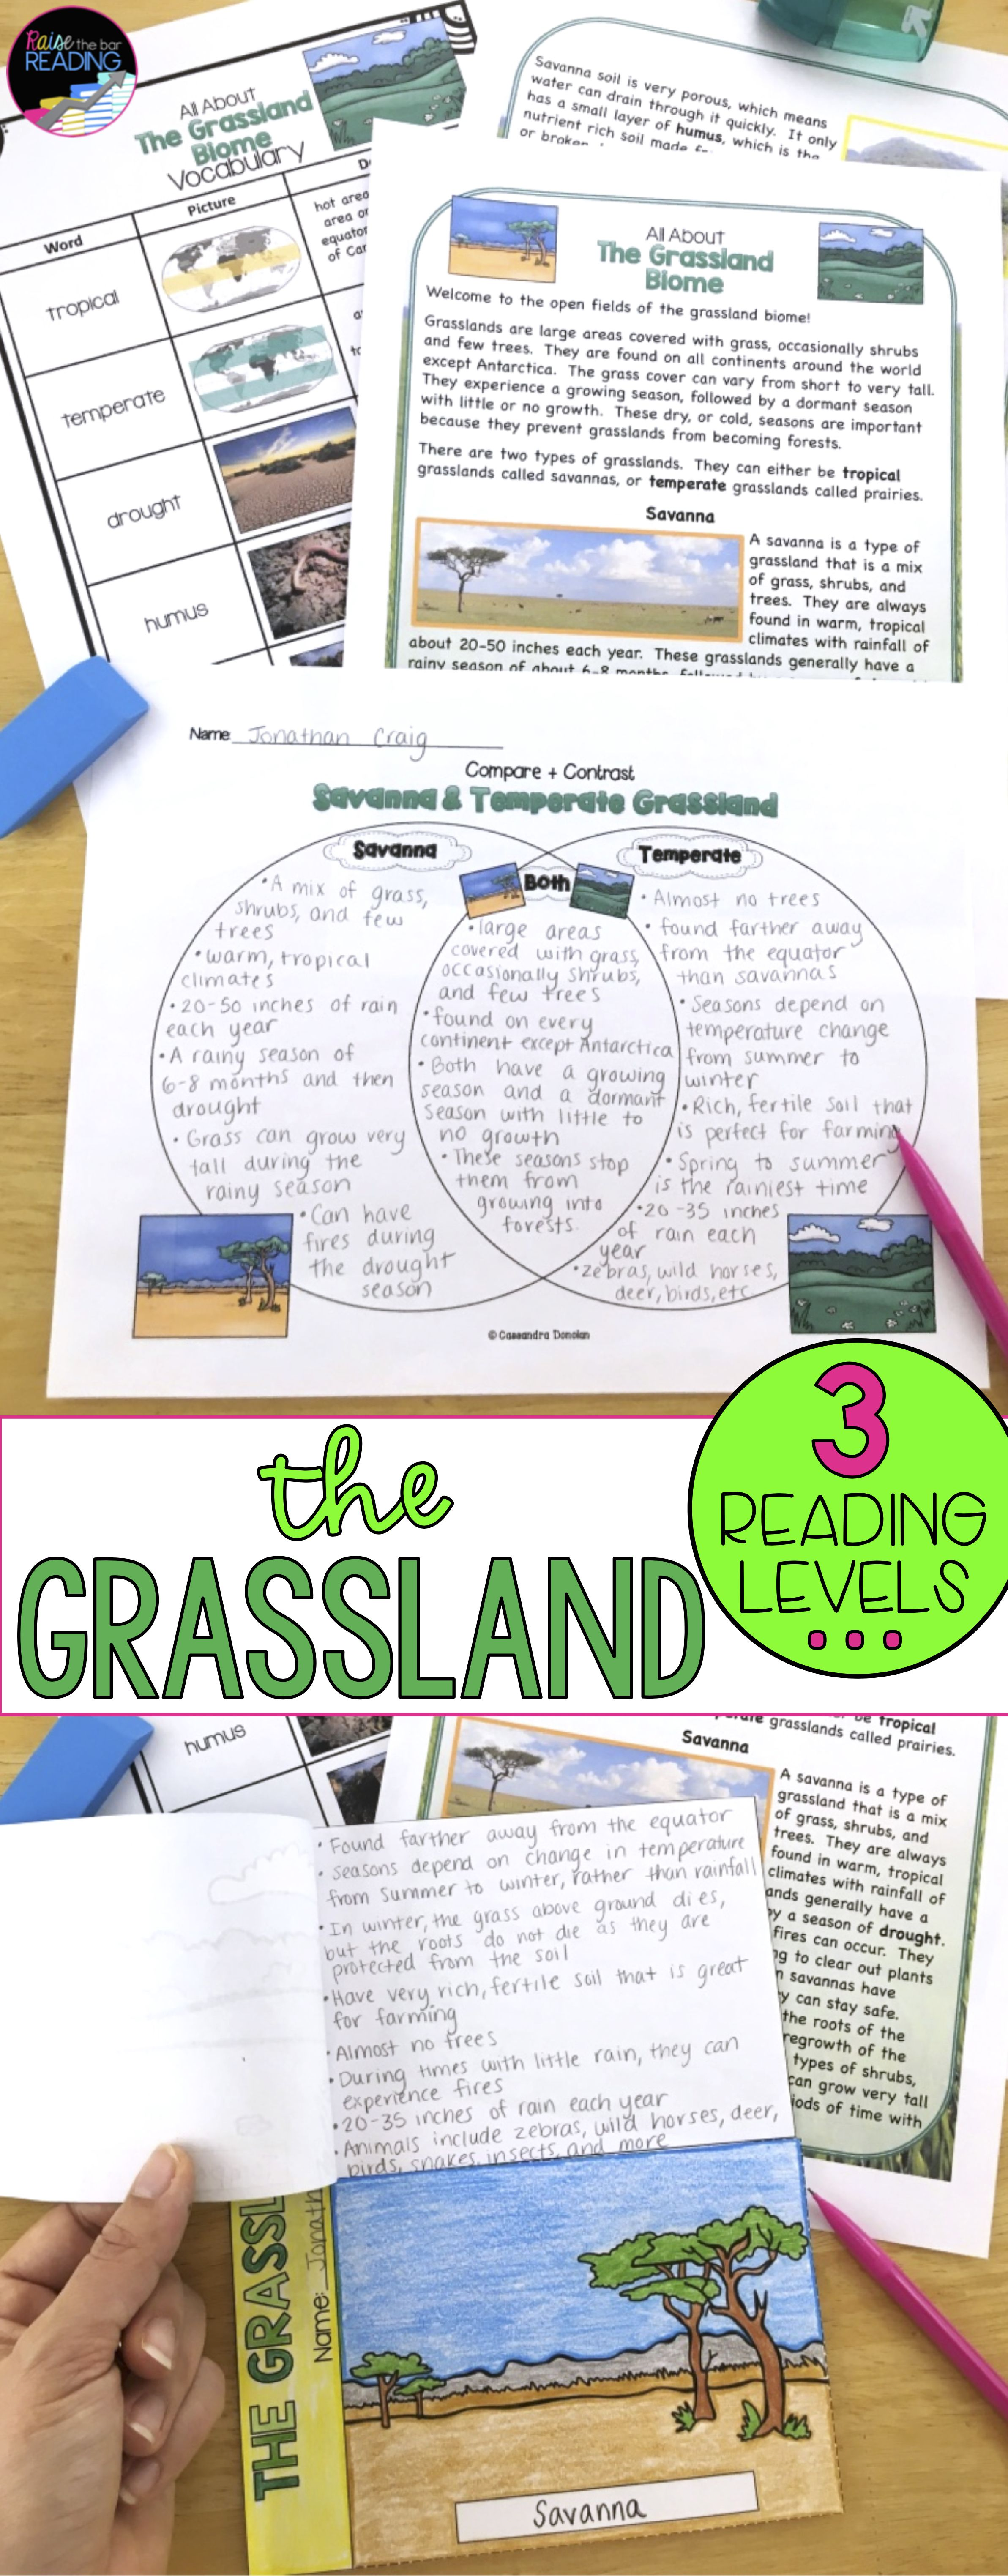 The Grassland Biome Reading Passages 3 Levels Vocabulary Amp Comprehension